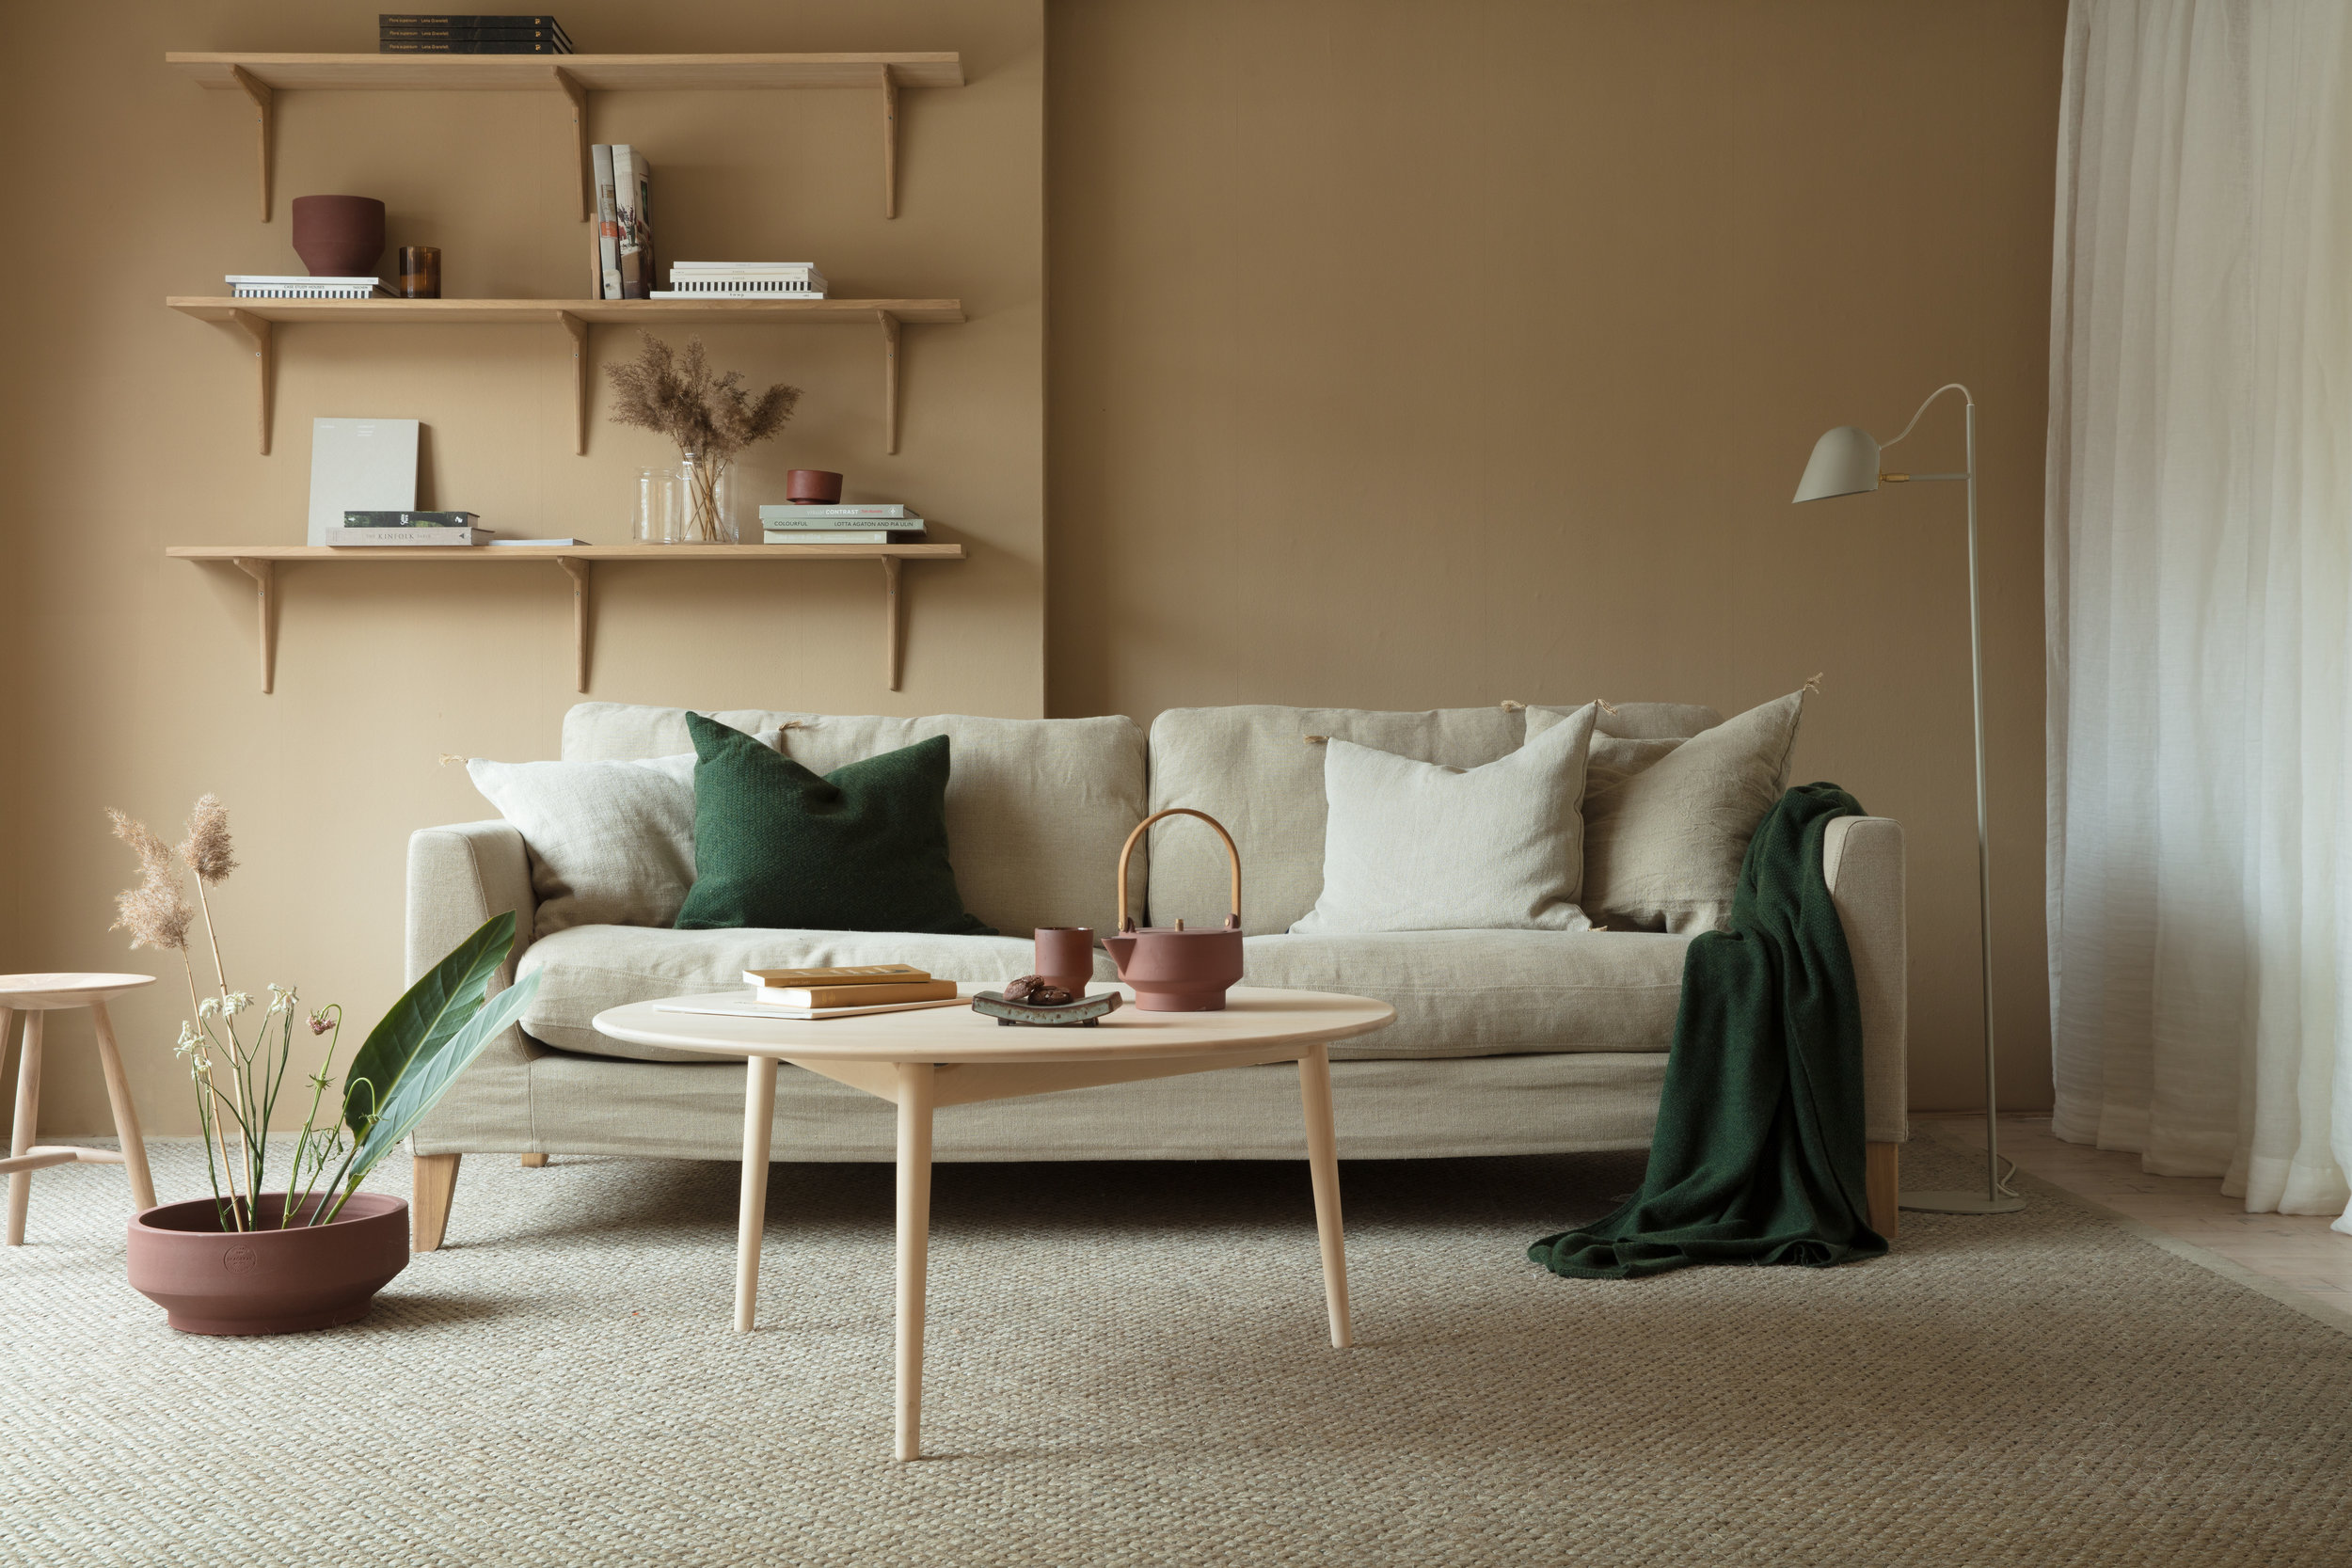 This Beautiful Living Room Setup In Natural Tints Is Styled By Fanny Lovisa  Skoglund For Norrgavel. The Tone On Tone Beige Living Room Is The Perfect  Canvas ...